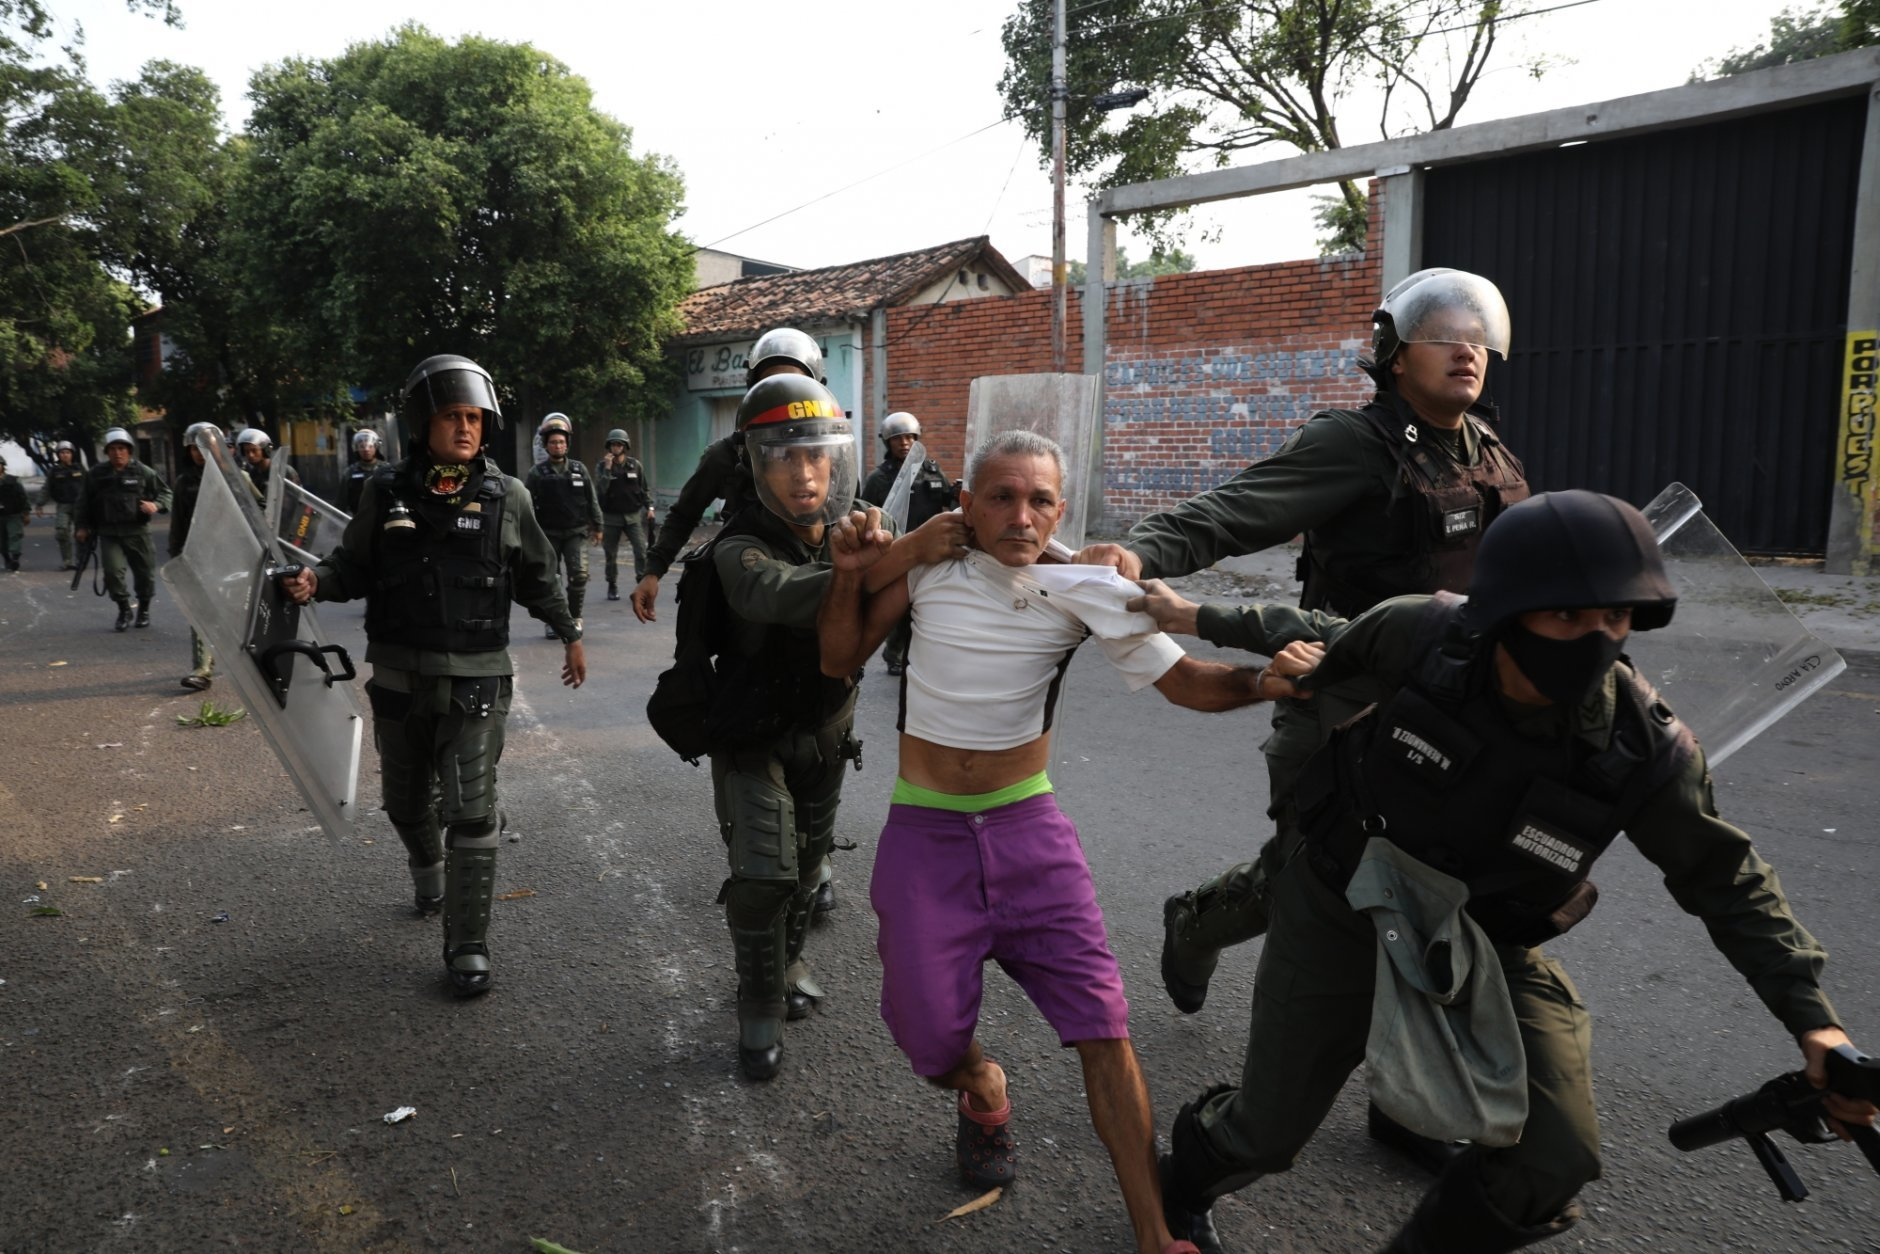 A man is detained during clashes with the Bolivarian National Guard in Urena, Venezuela, near the border with Colombia, Saturday, Feb. 23, 2019. Venezuela's National Guard fired tear gas on residents clearing a barricaded border bridge between Venezuela and Colombia on Saturday, heightening tensions over blocked humanitarian aid that opposition leader Juan Guaido has vowed to bring into the country over objections from President Nicolas Maduro. (AP Photo/Rodrigo Abd)